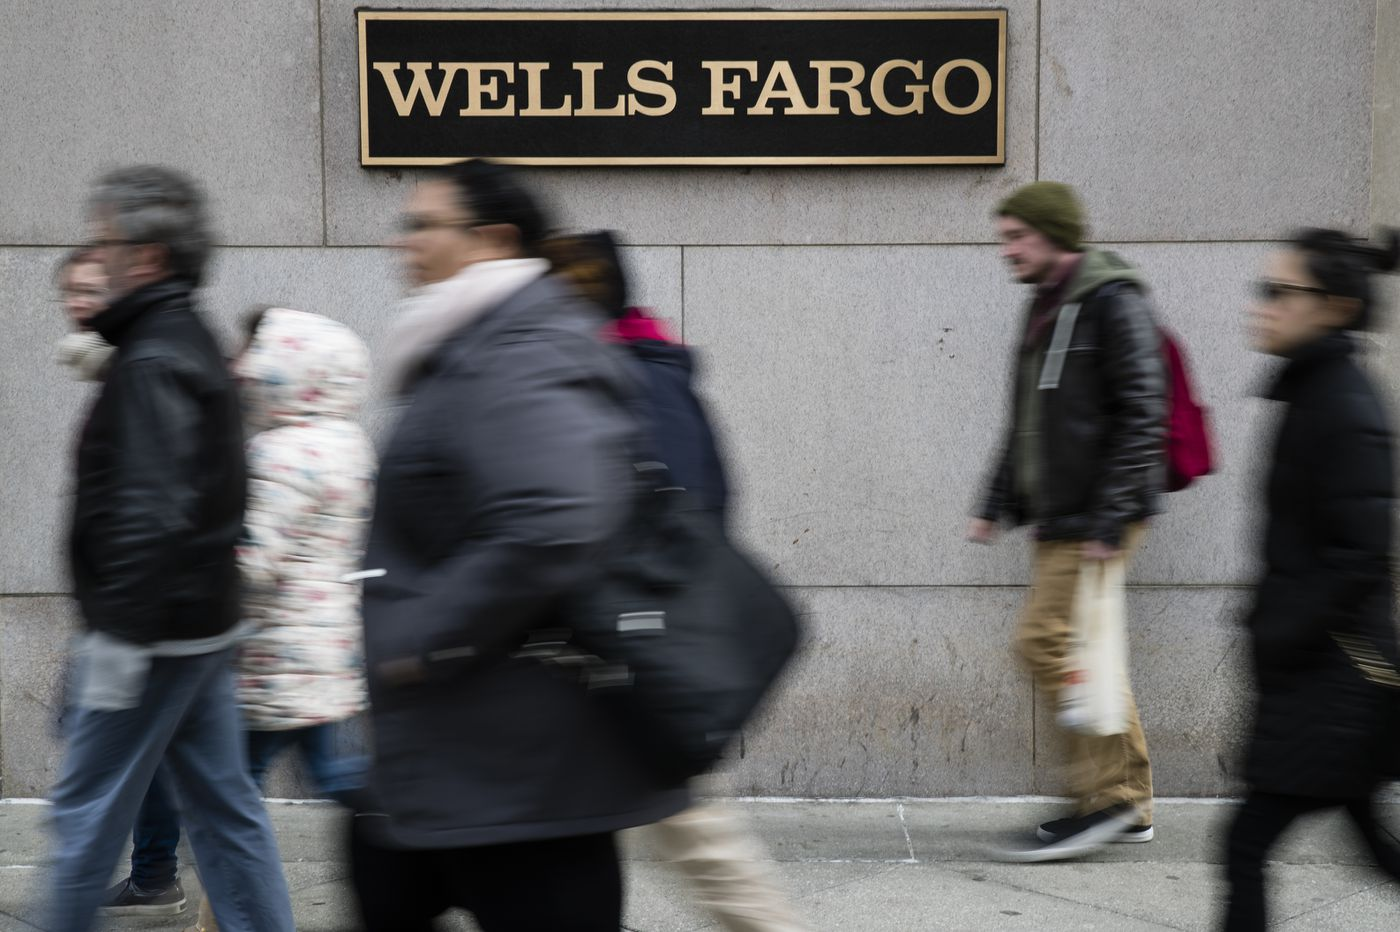 Wells Fargo reaches $857 million settlement for consumer abuses